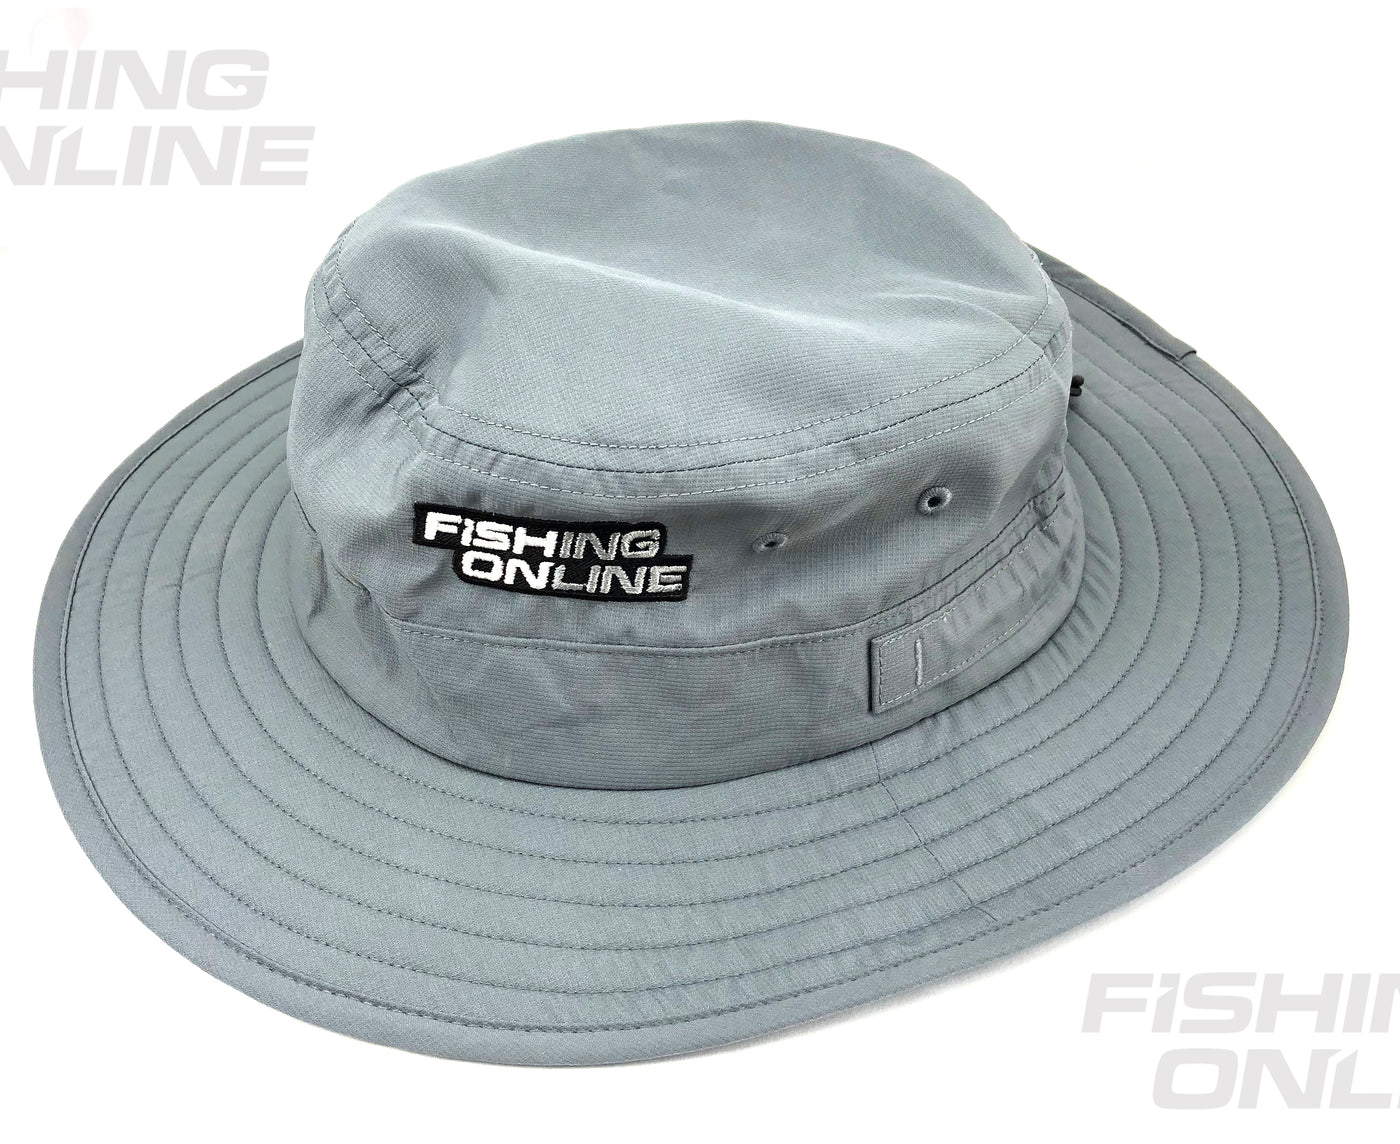 afbbacefd465 Fishing Online Wide Brim Sun Hat [Light Grey]